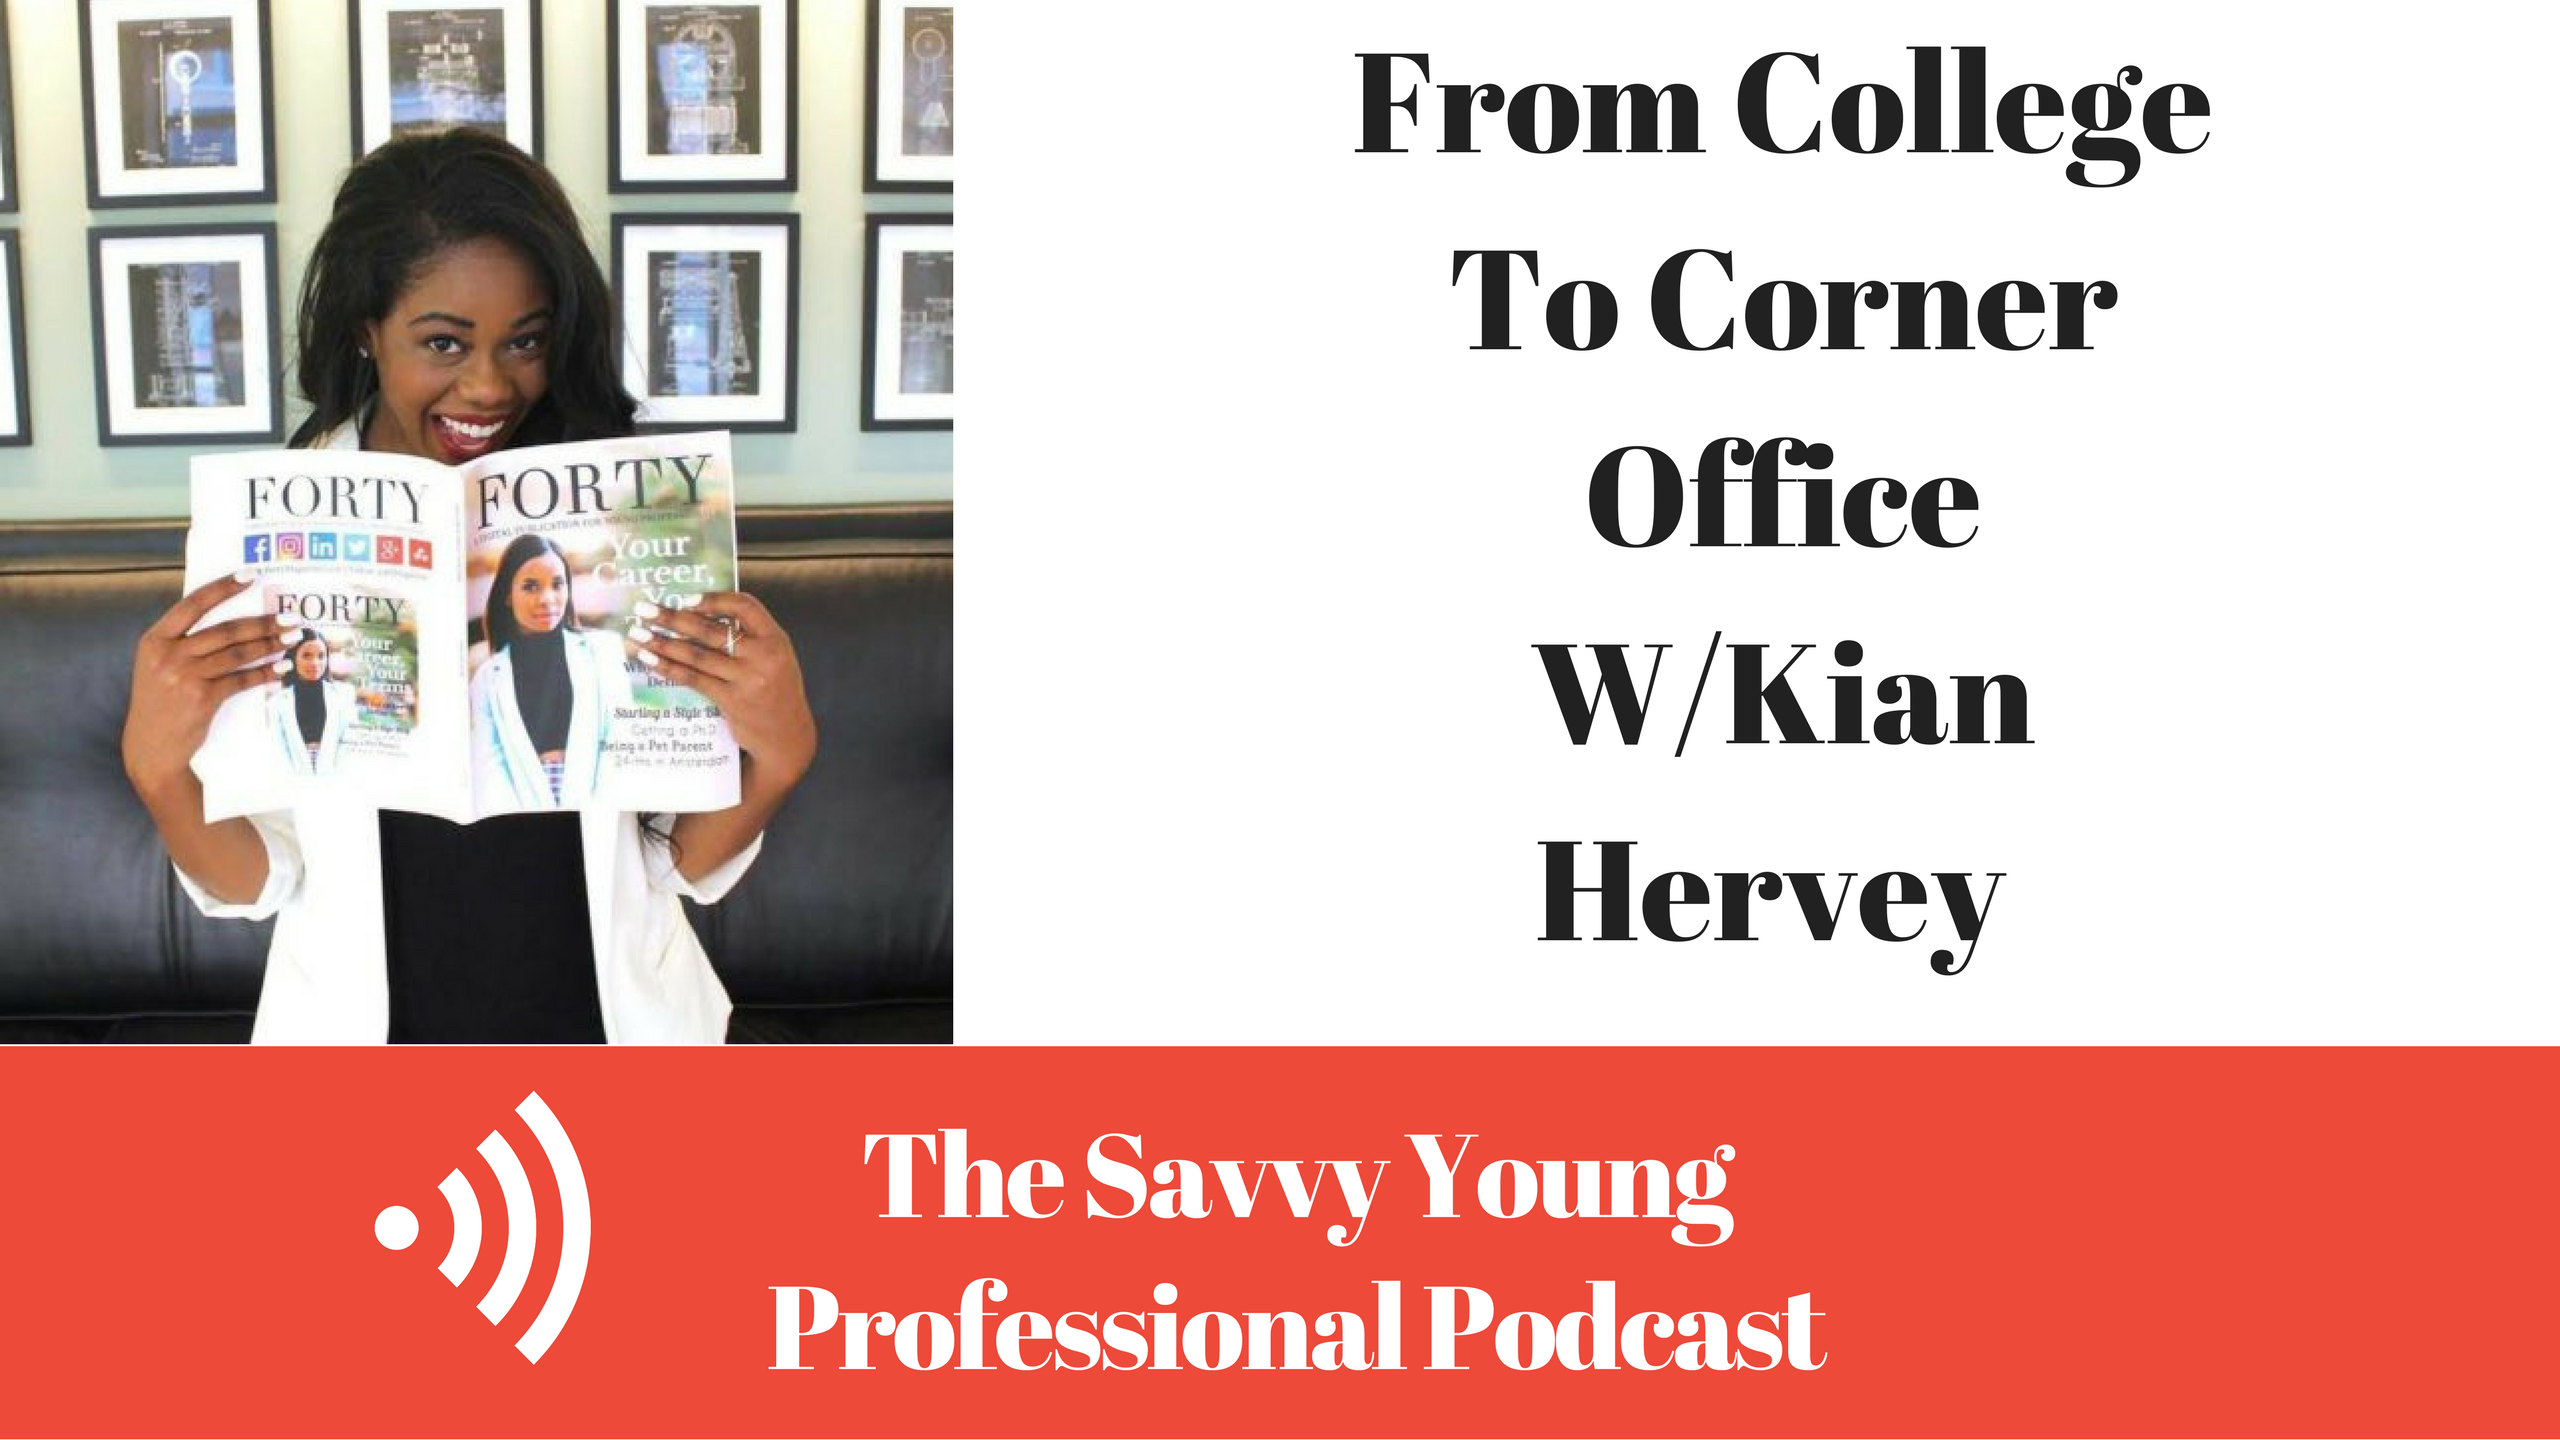 30-college-corner-office-w-kian-hervey